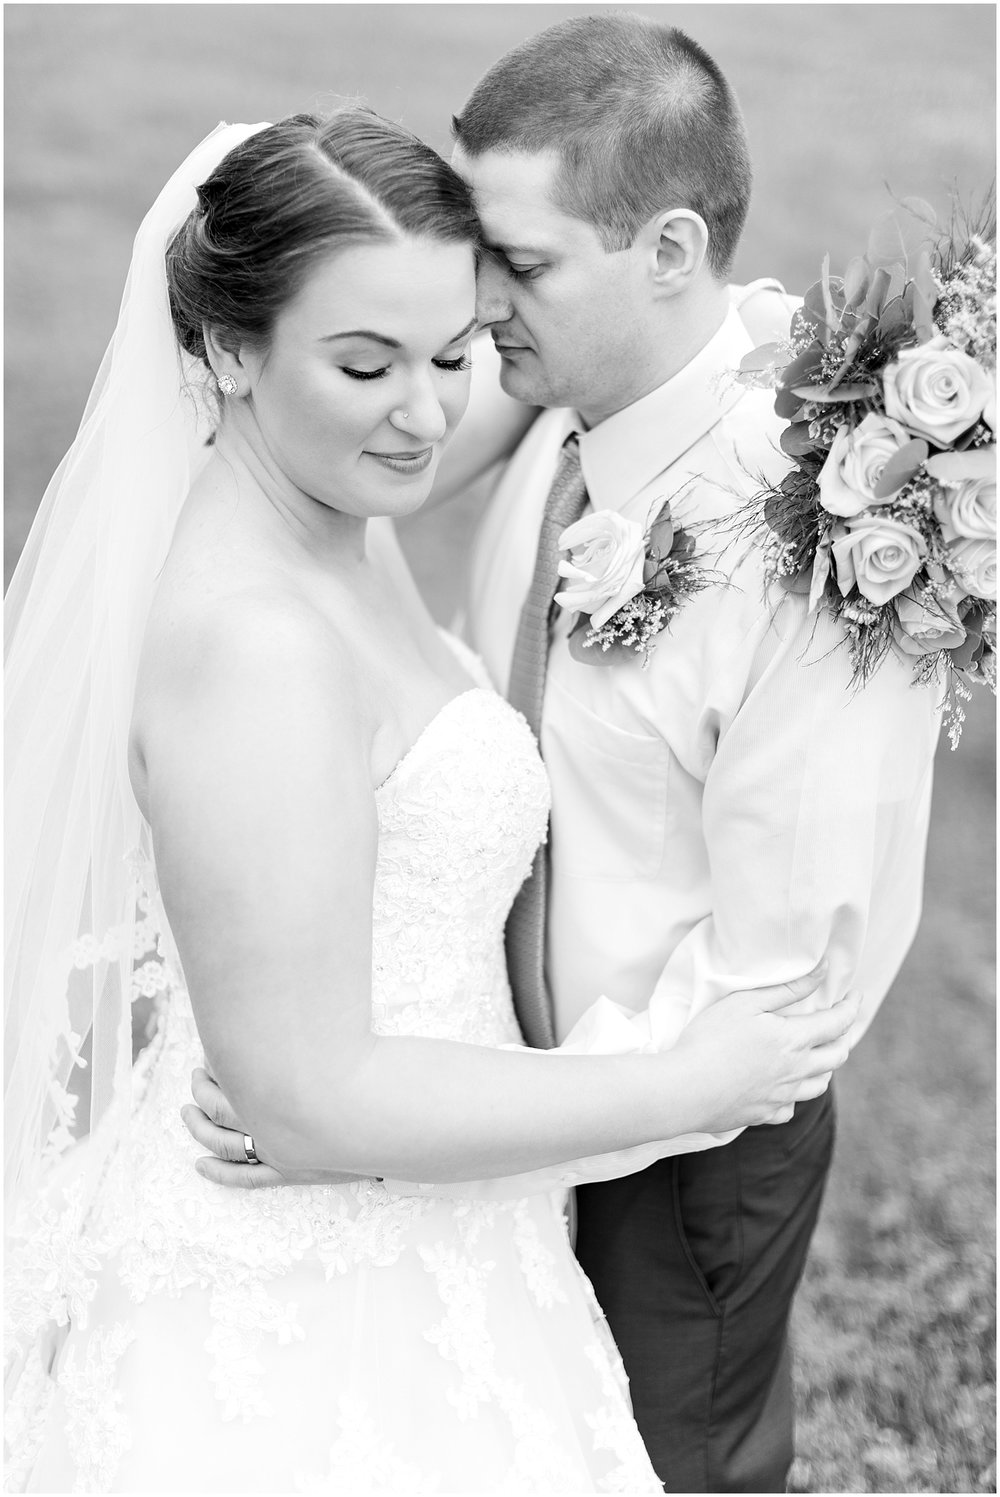 Romantic Bride and Groom Photo by Alyssa Parker Photography